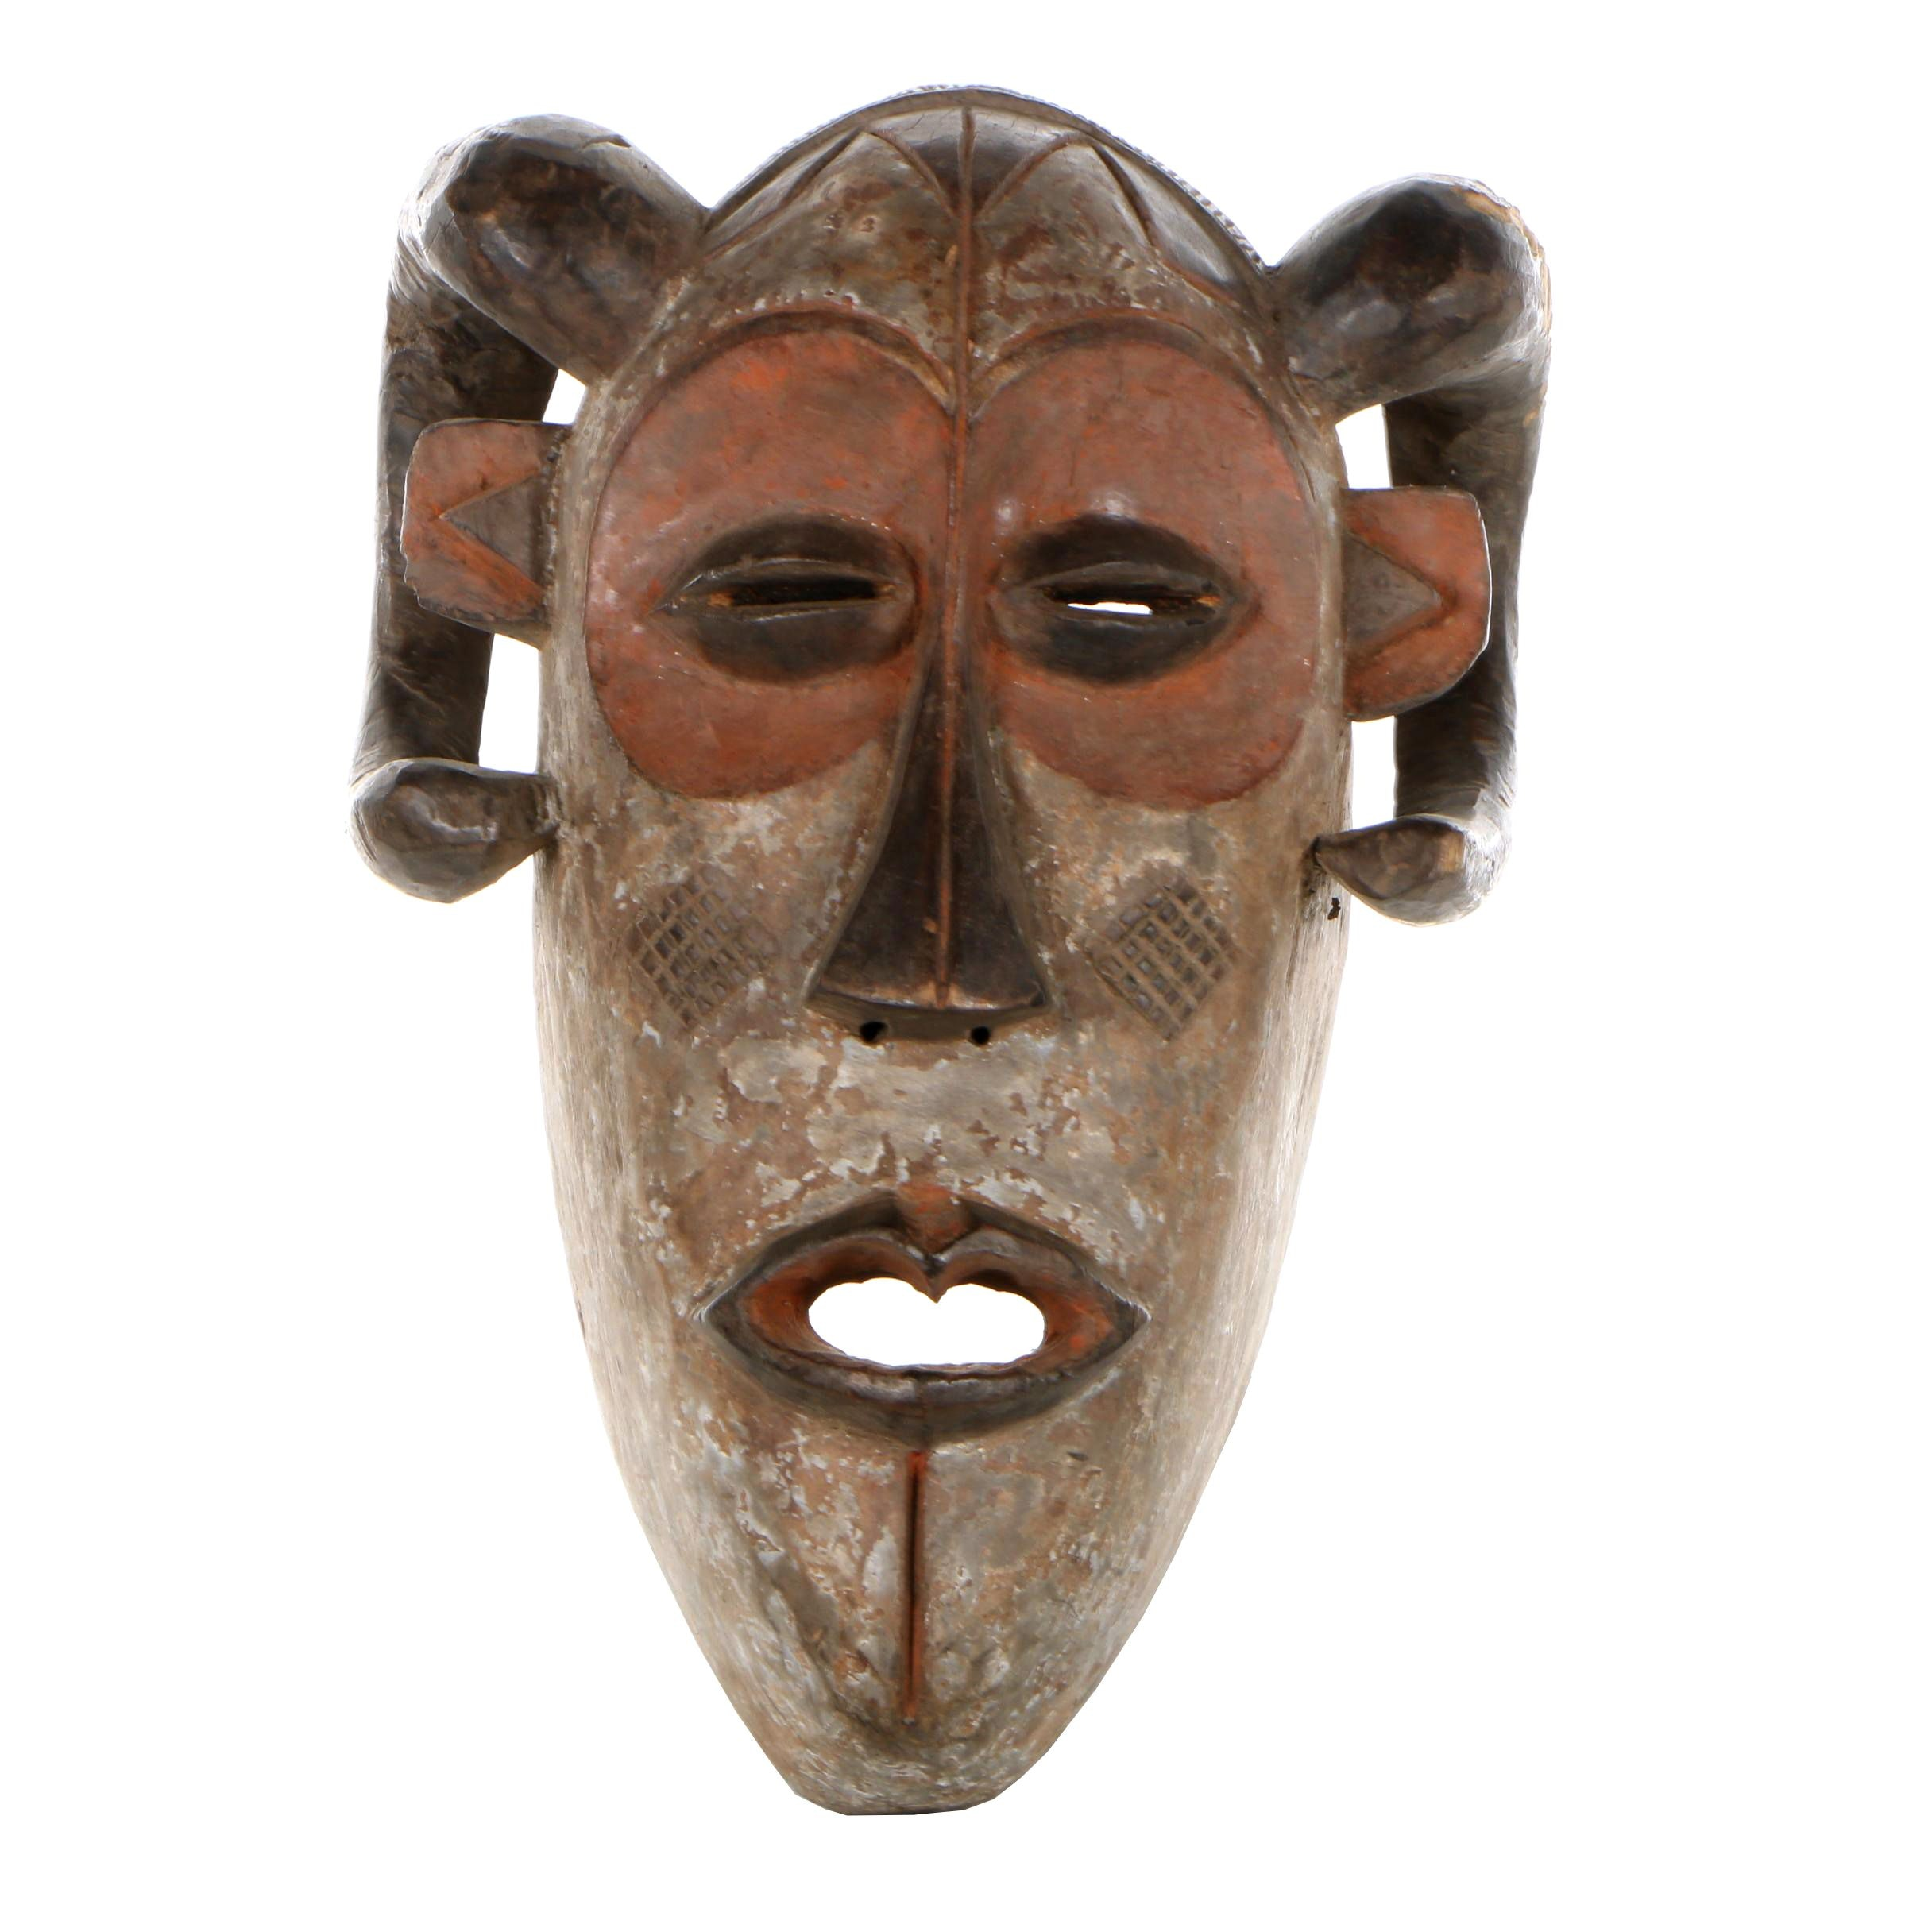 20th Century Wooden Polychrome Mask from the Congo Basin